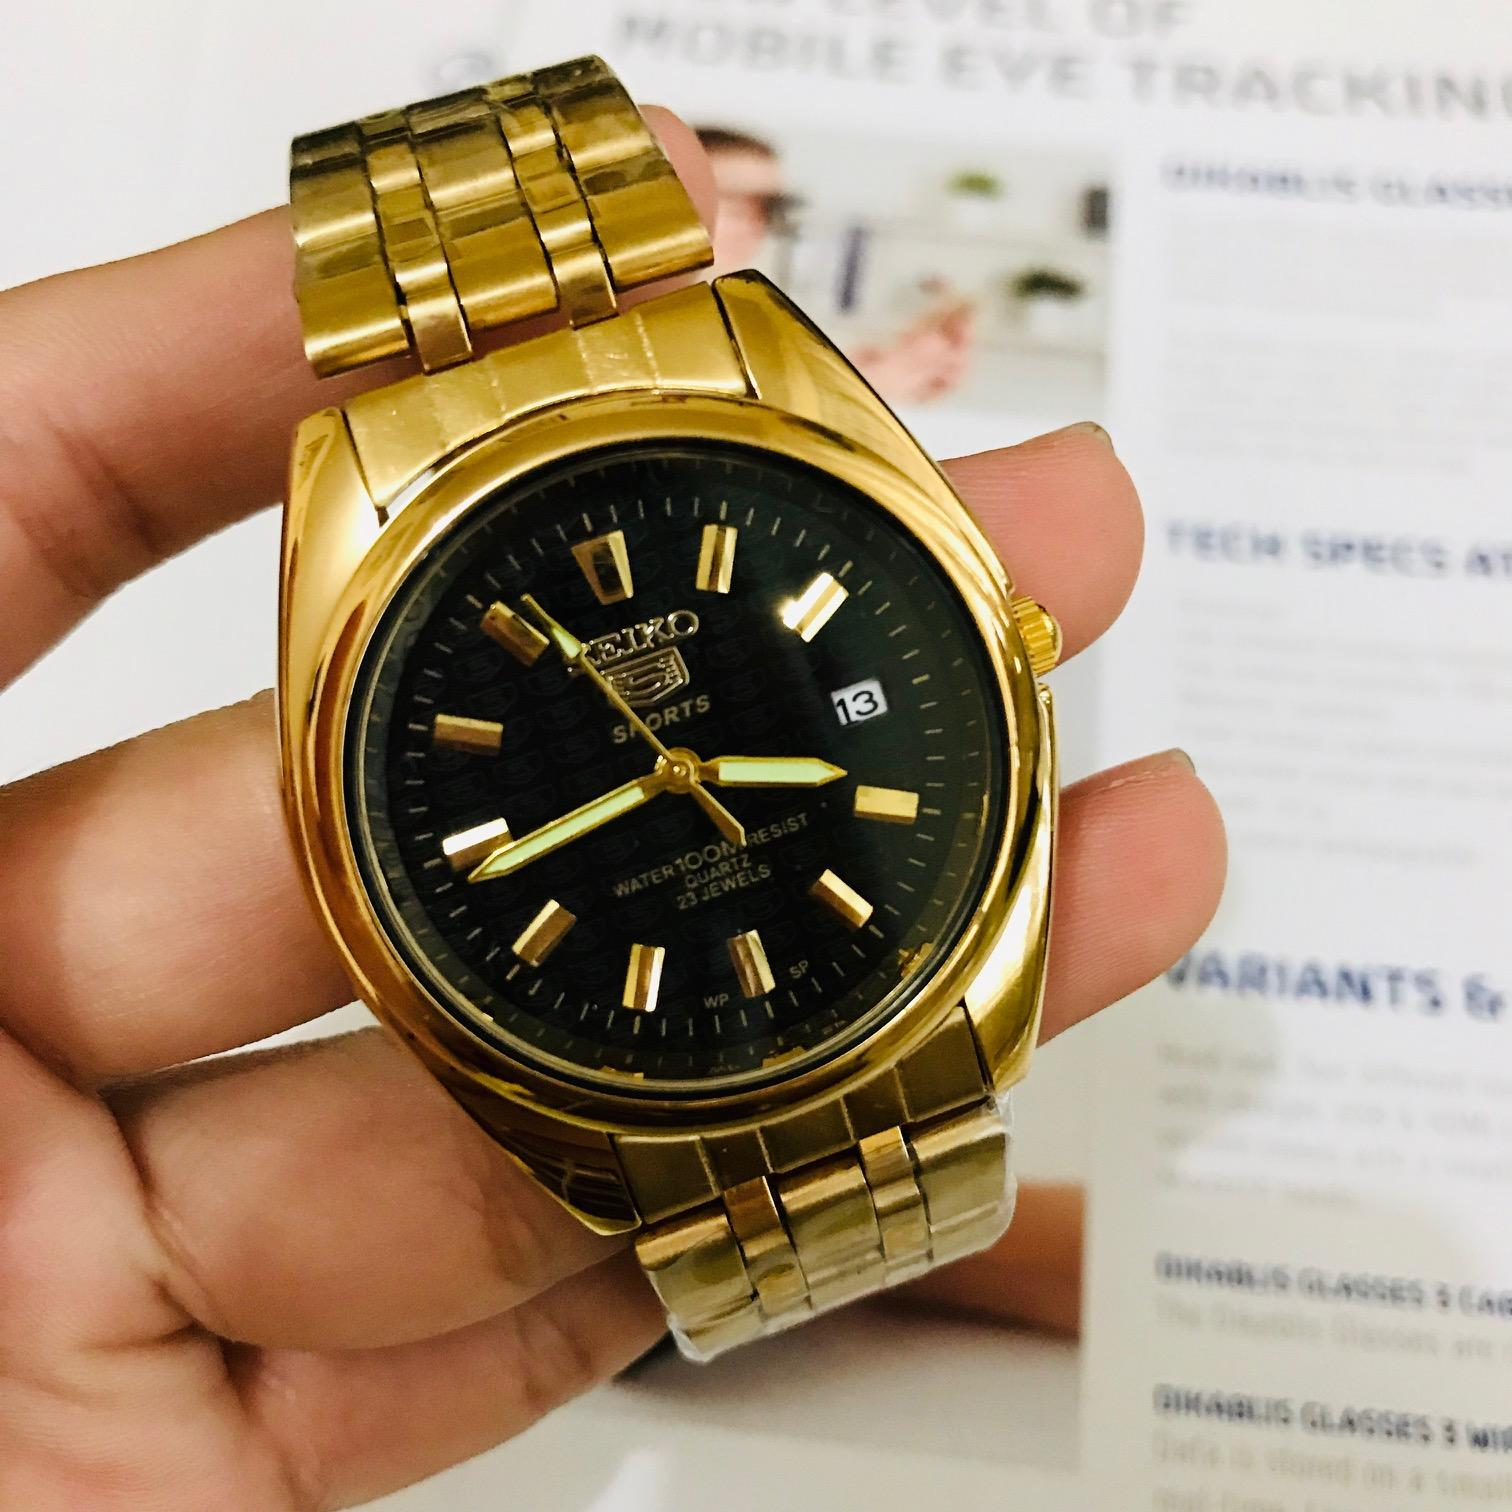 AUTOMATIC SEIKO 5 Water Resist MENS GOLD stainless steel watch